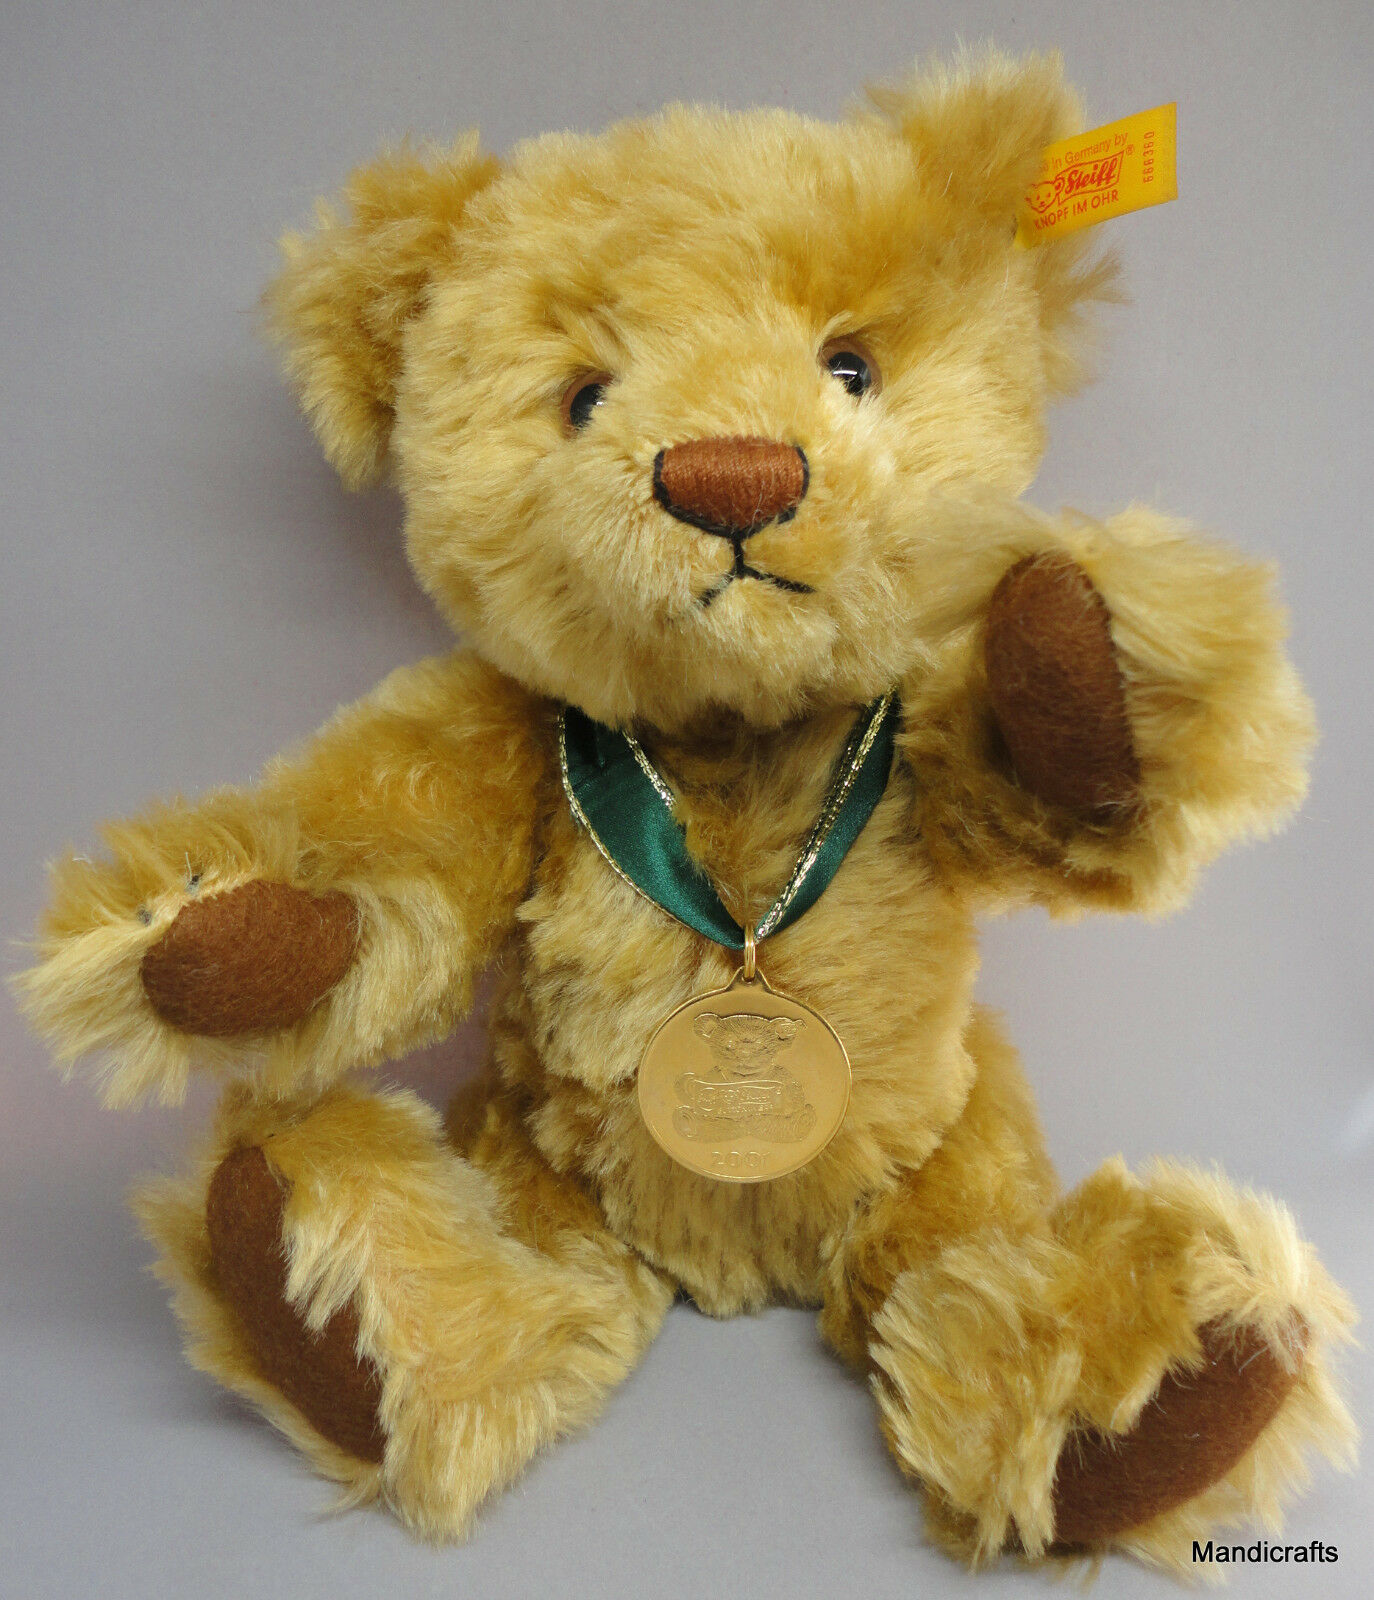 Steiff Teddy Bear 2001 Mohair oro Medallion Danbury Mint ID Button Tag 12in Box